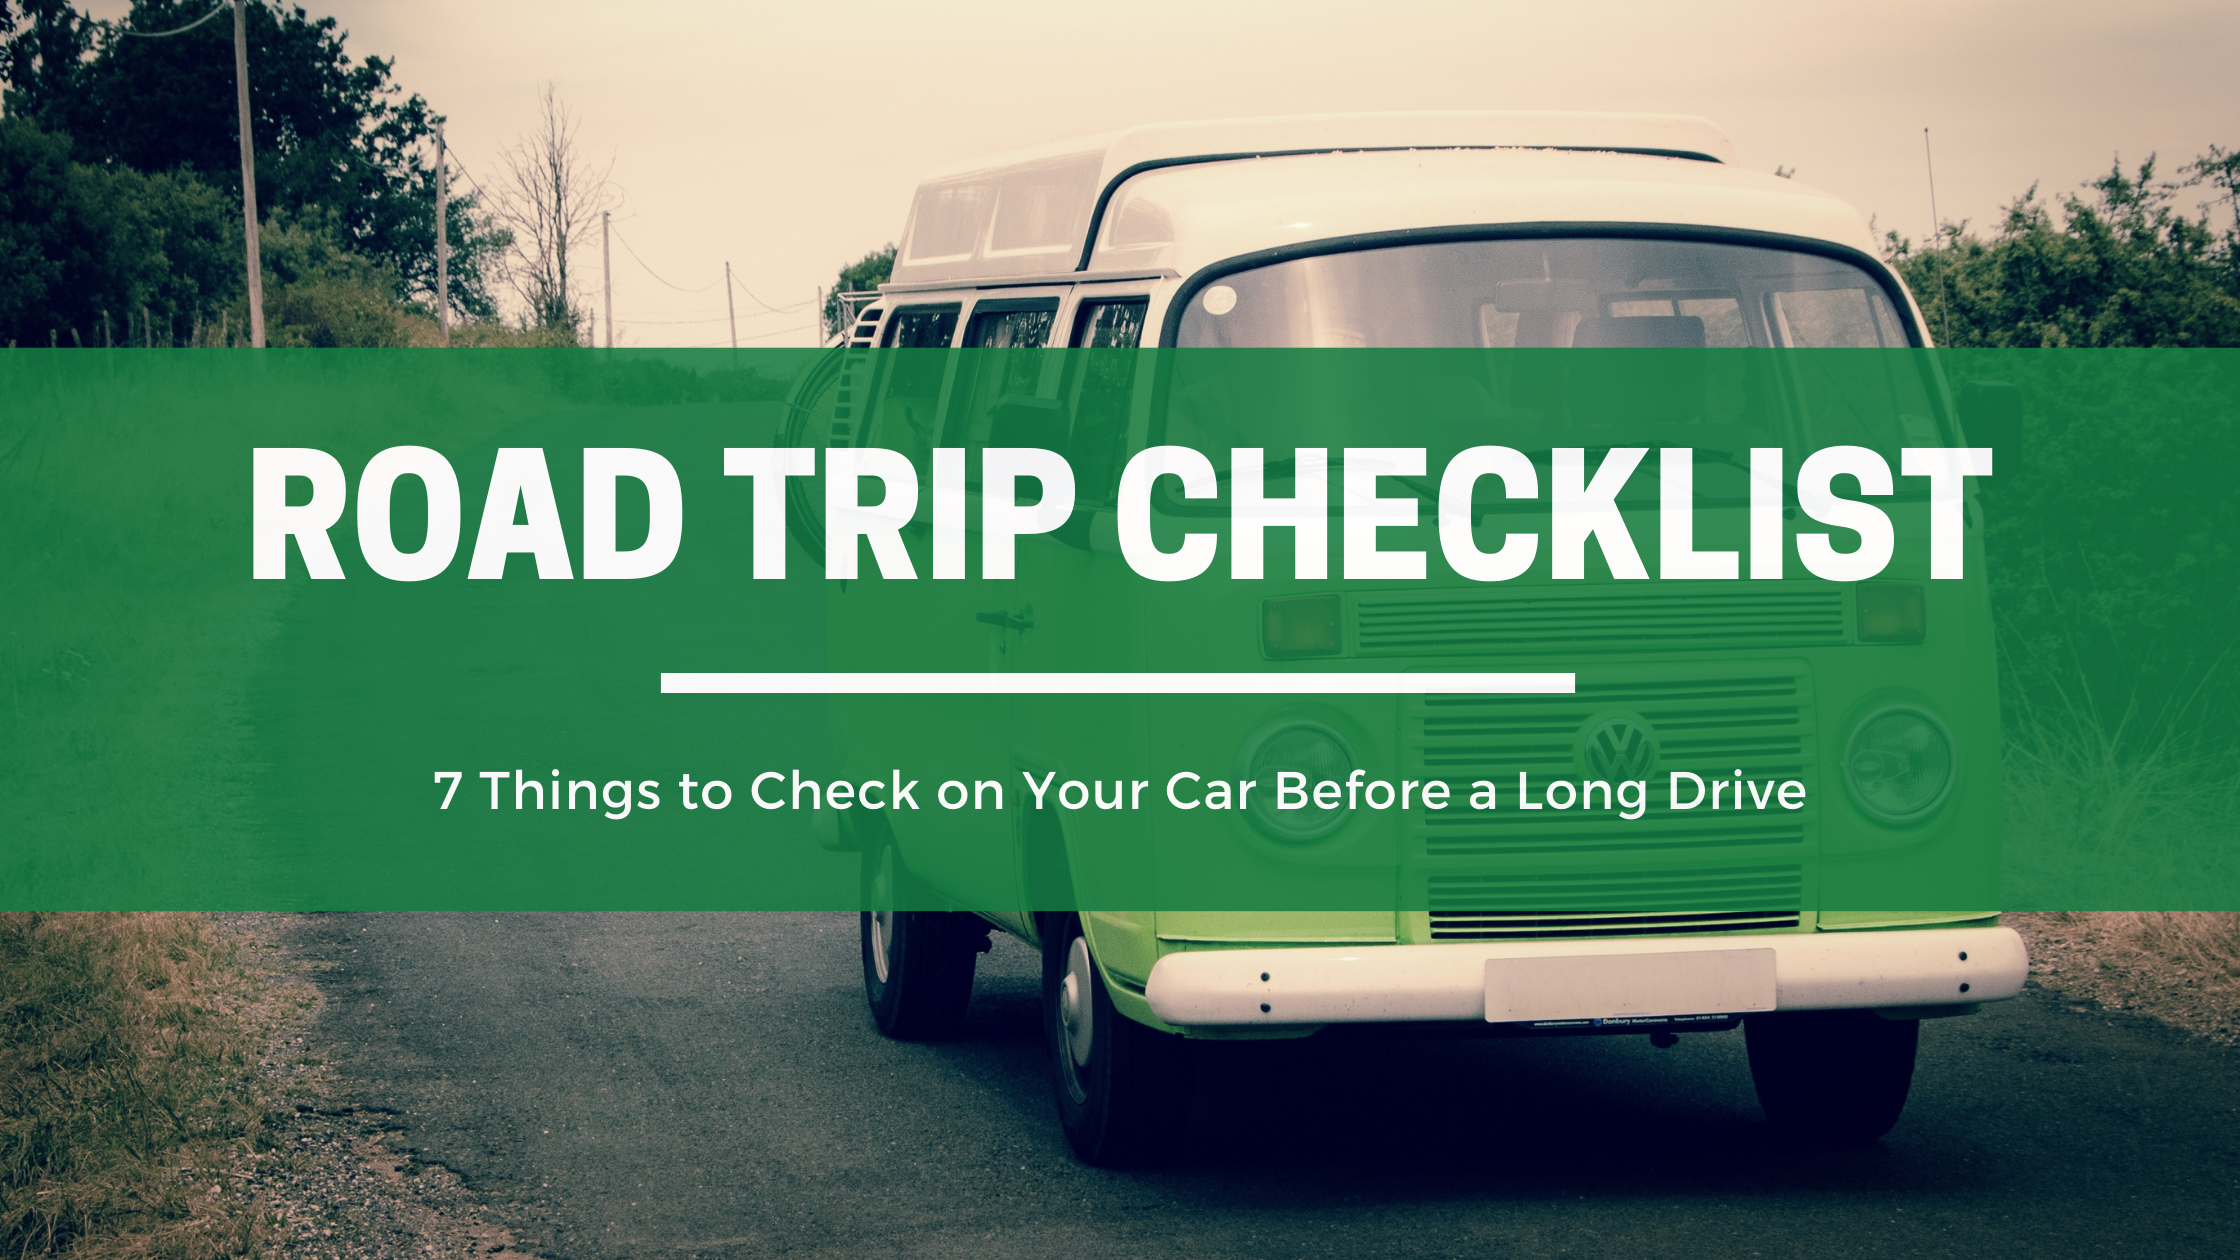 road trip checklist graphic